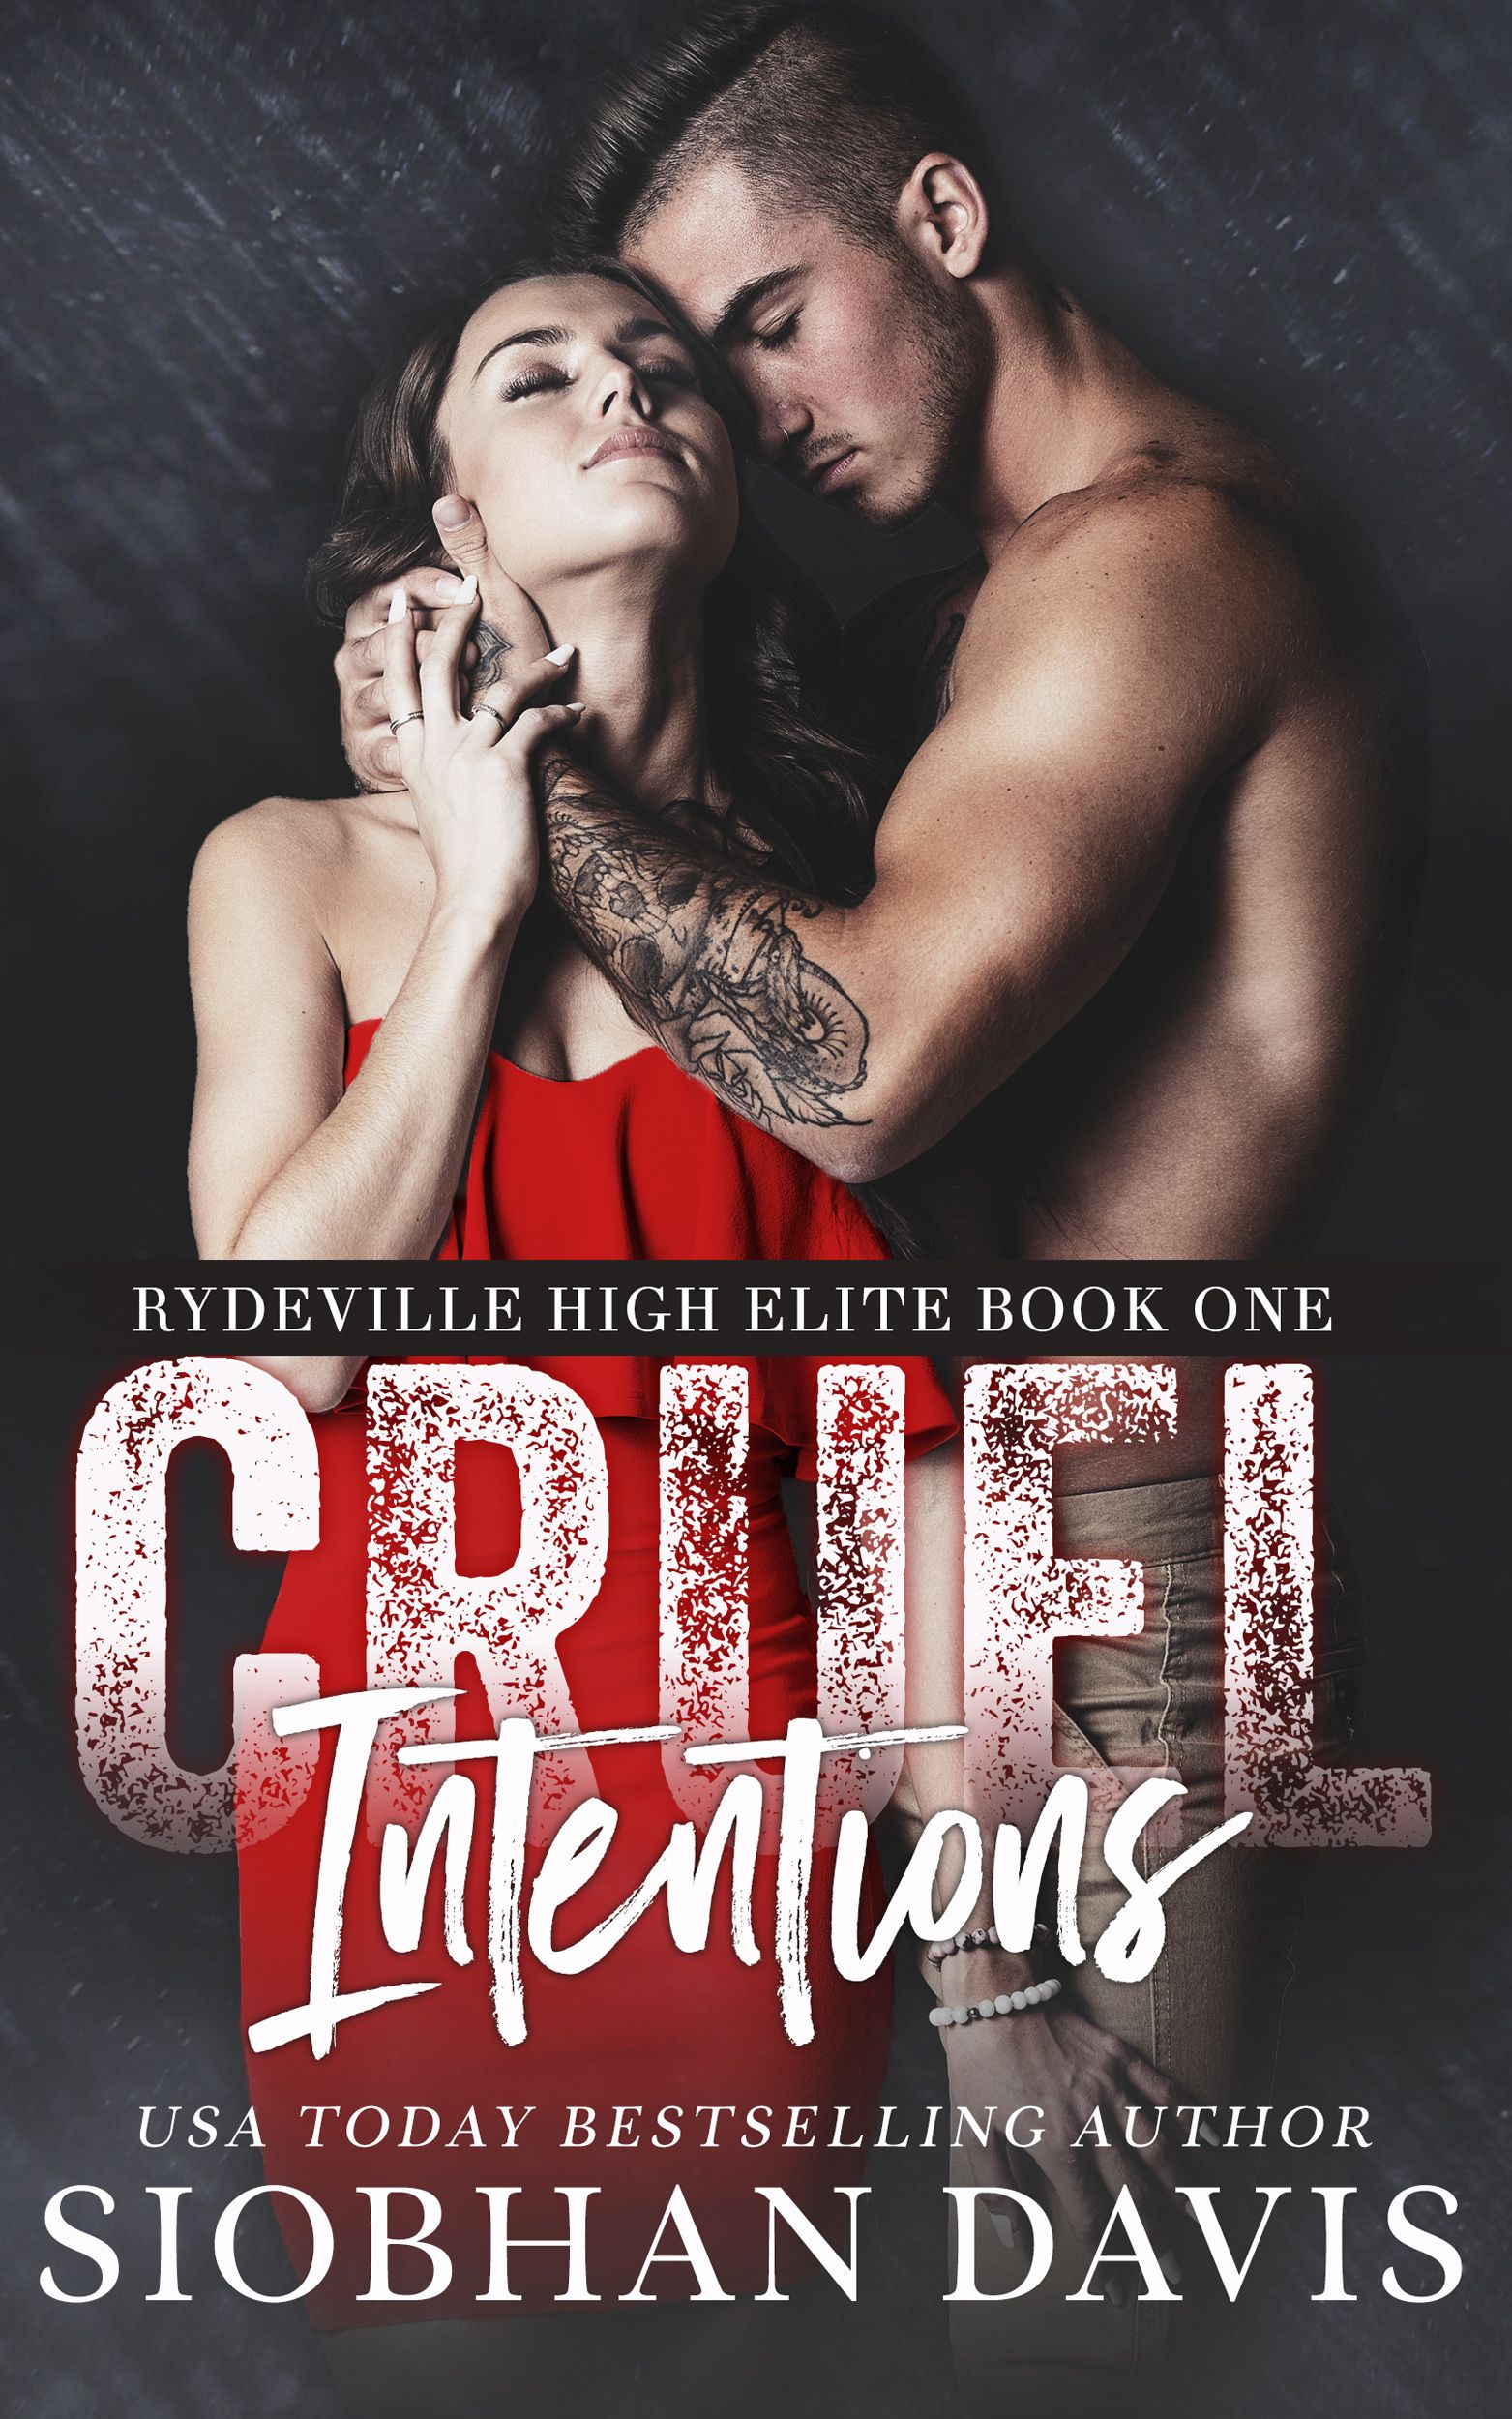 Book Promotion Cruel Intentions By Siobhan Davis Cruel Intentions Books About Bullying School Bullying